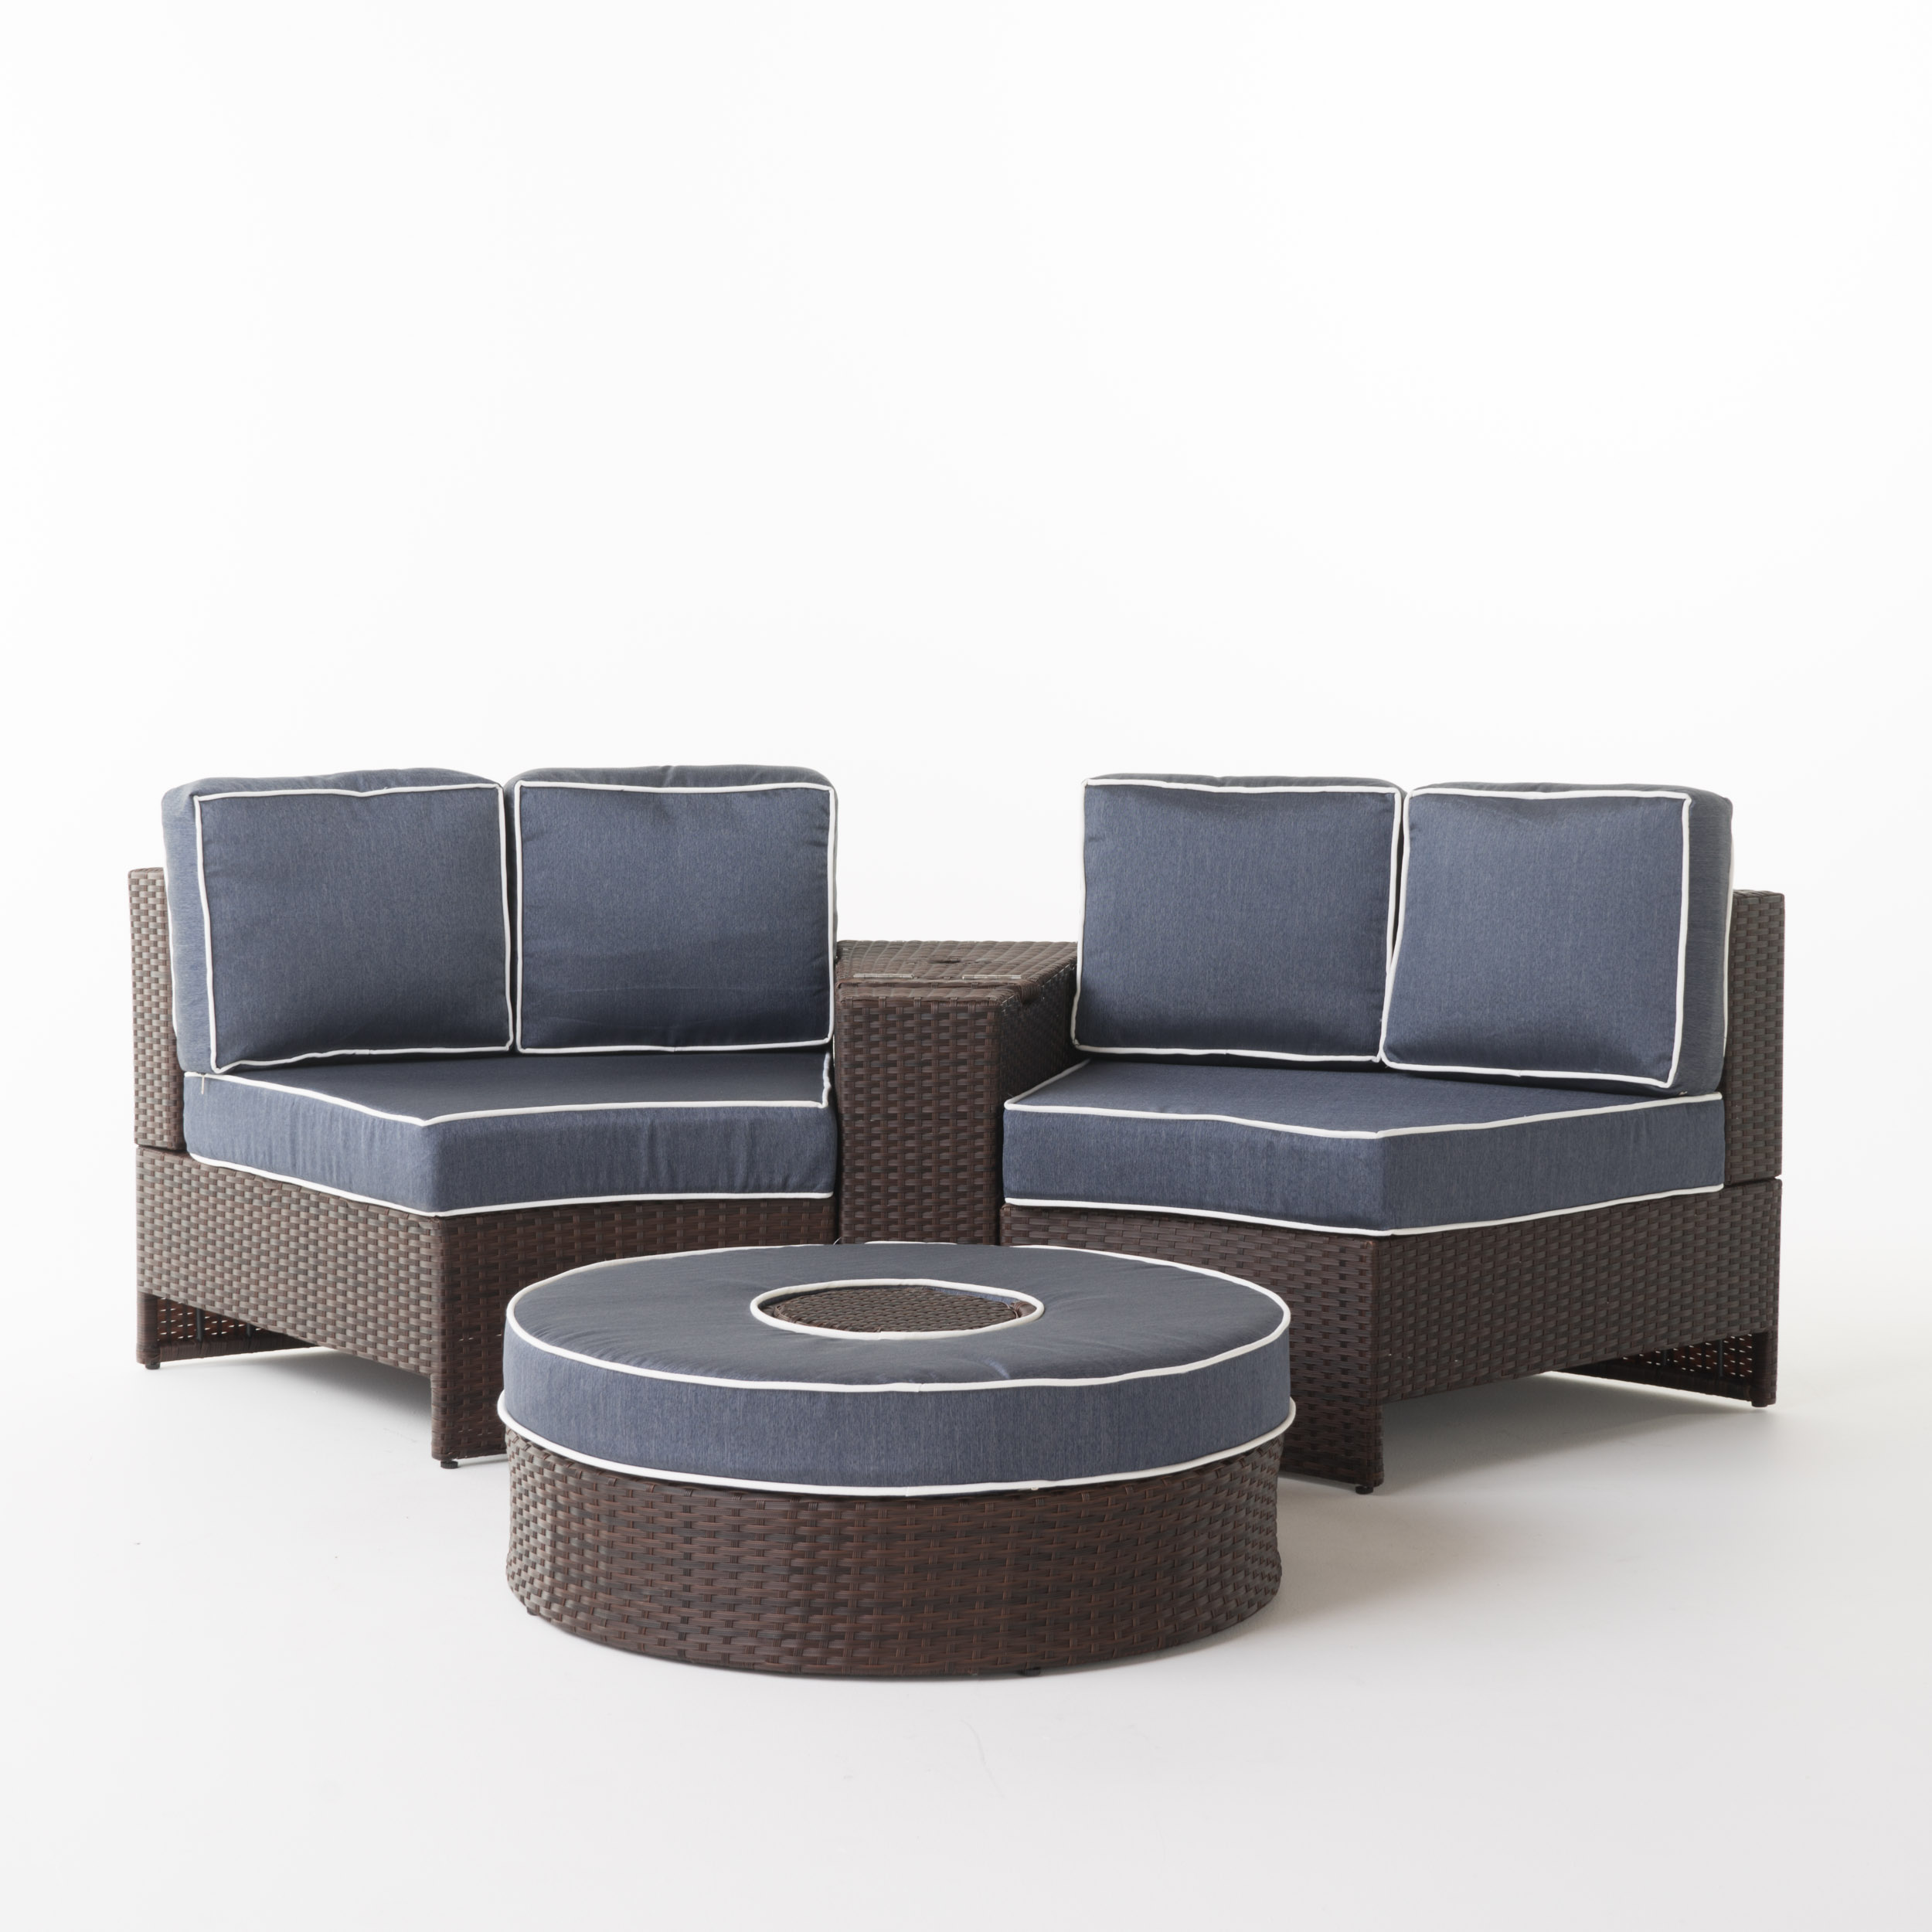 Riviera Positano Wicker 4 Piece Semicircular Sectional Sofa Seating Set with Cushions with Ice Bucket Ottoman, Navy